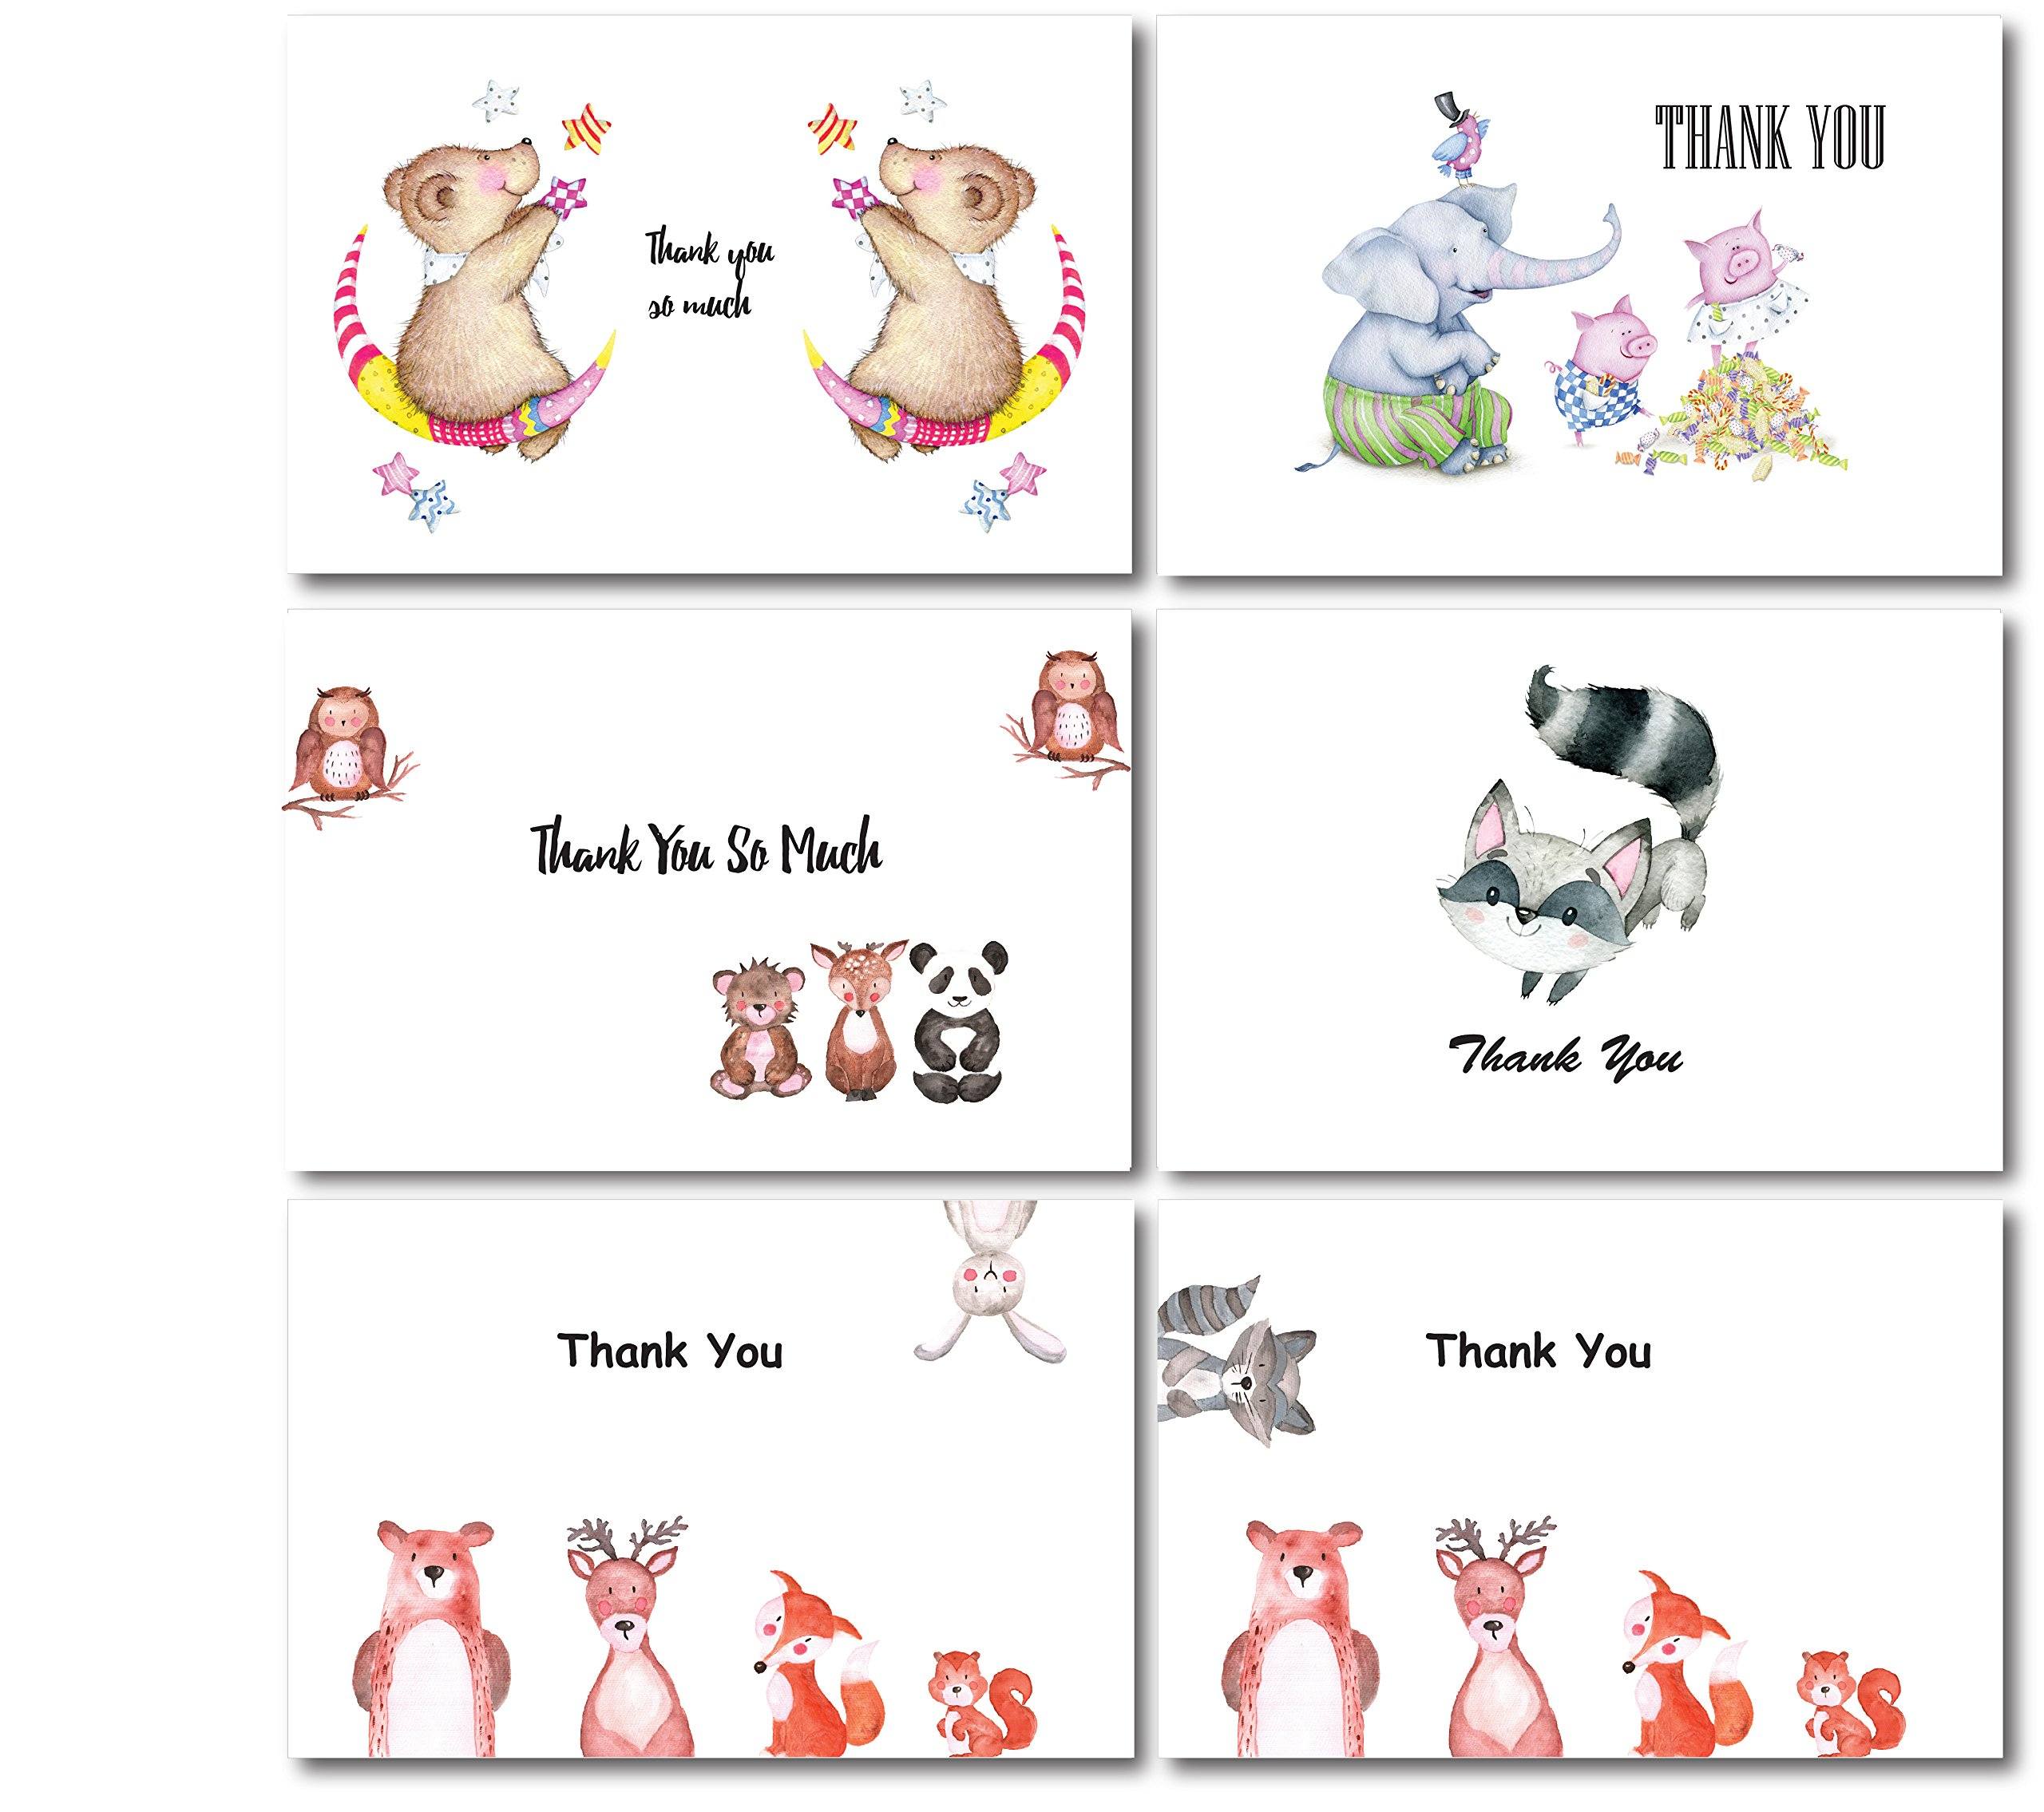 Cute animals thank you greeting cards baby showers celebrations cute animals thank you greeting cards baby showers celebrations kids toddlers birthdays parties 36 m4hsunfo